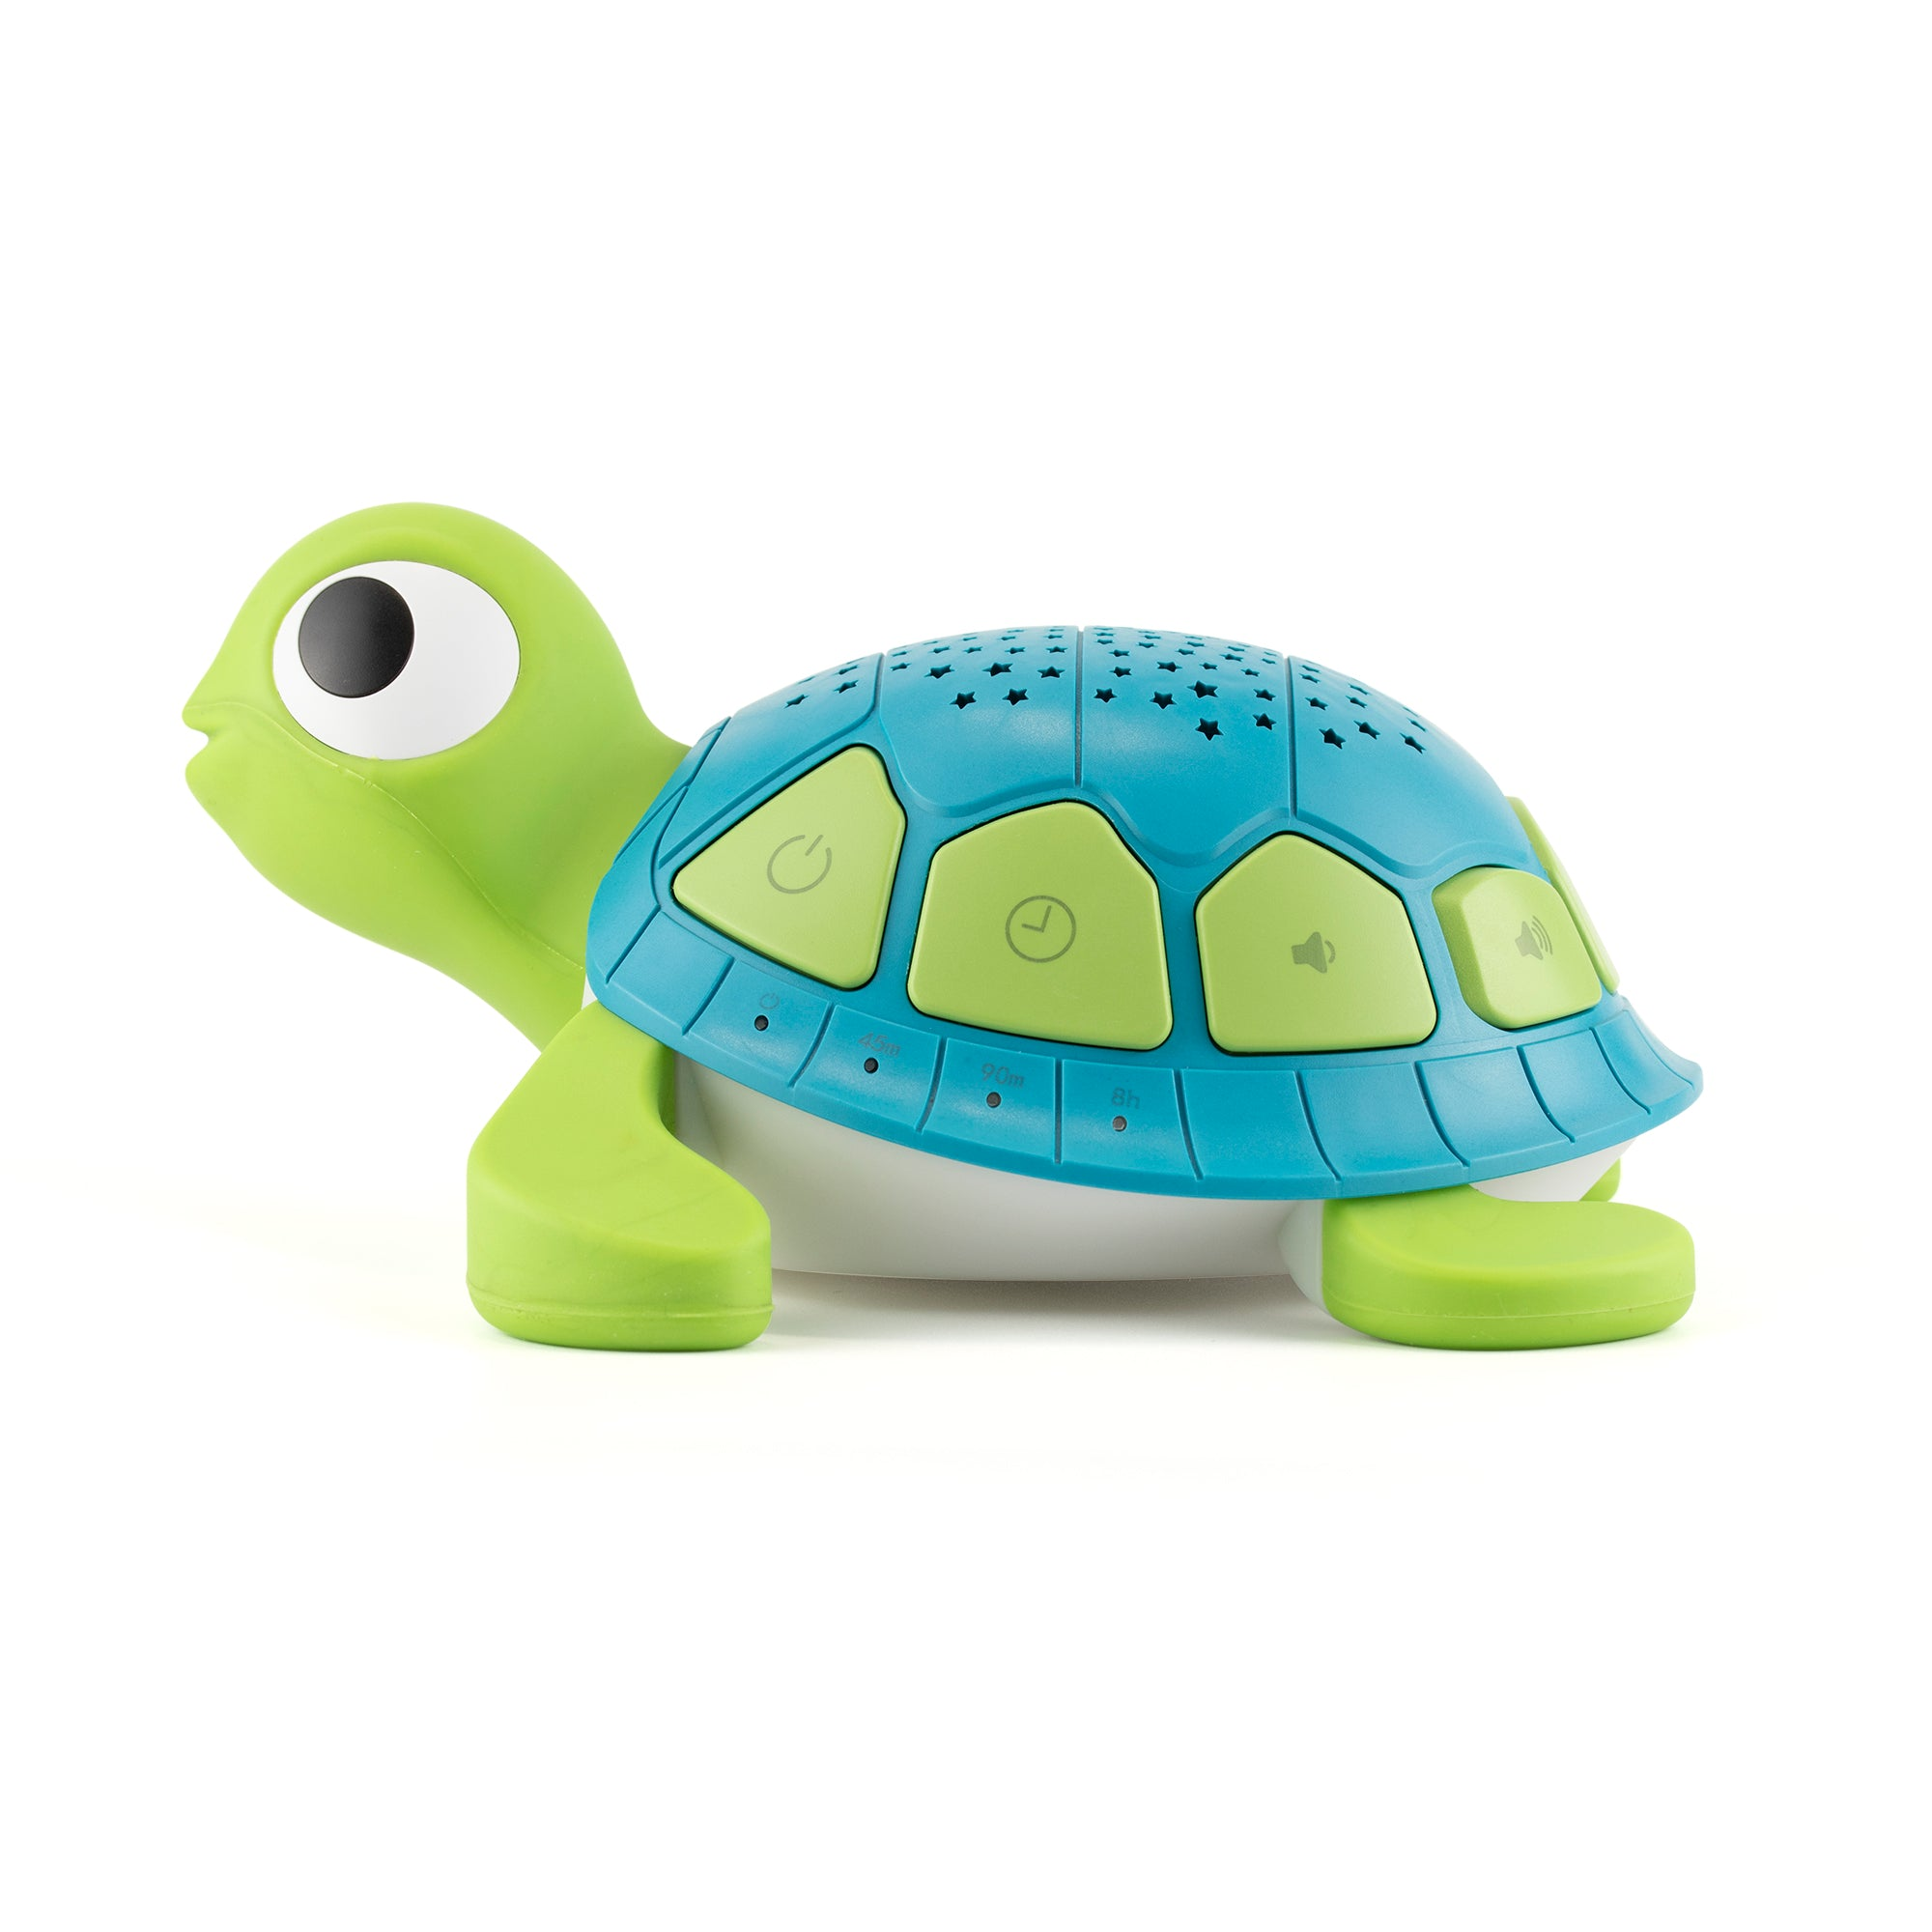 Soundscene - Turtle Sound Machine with Light Projector from Yogasleep